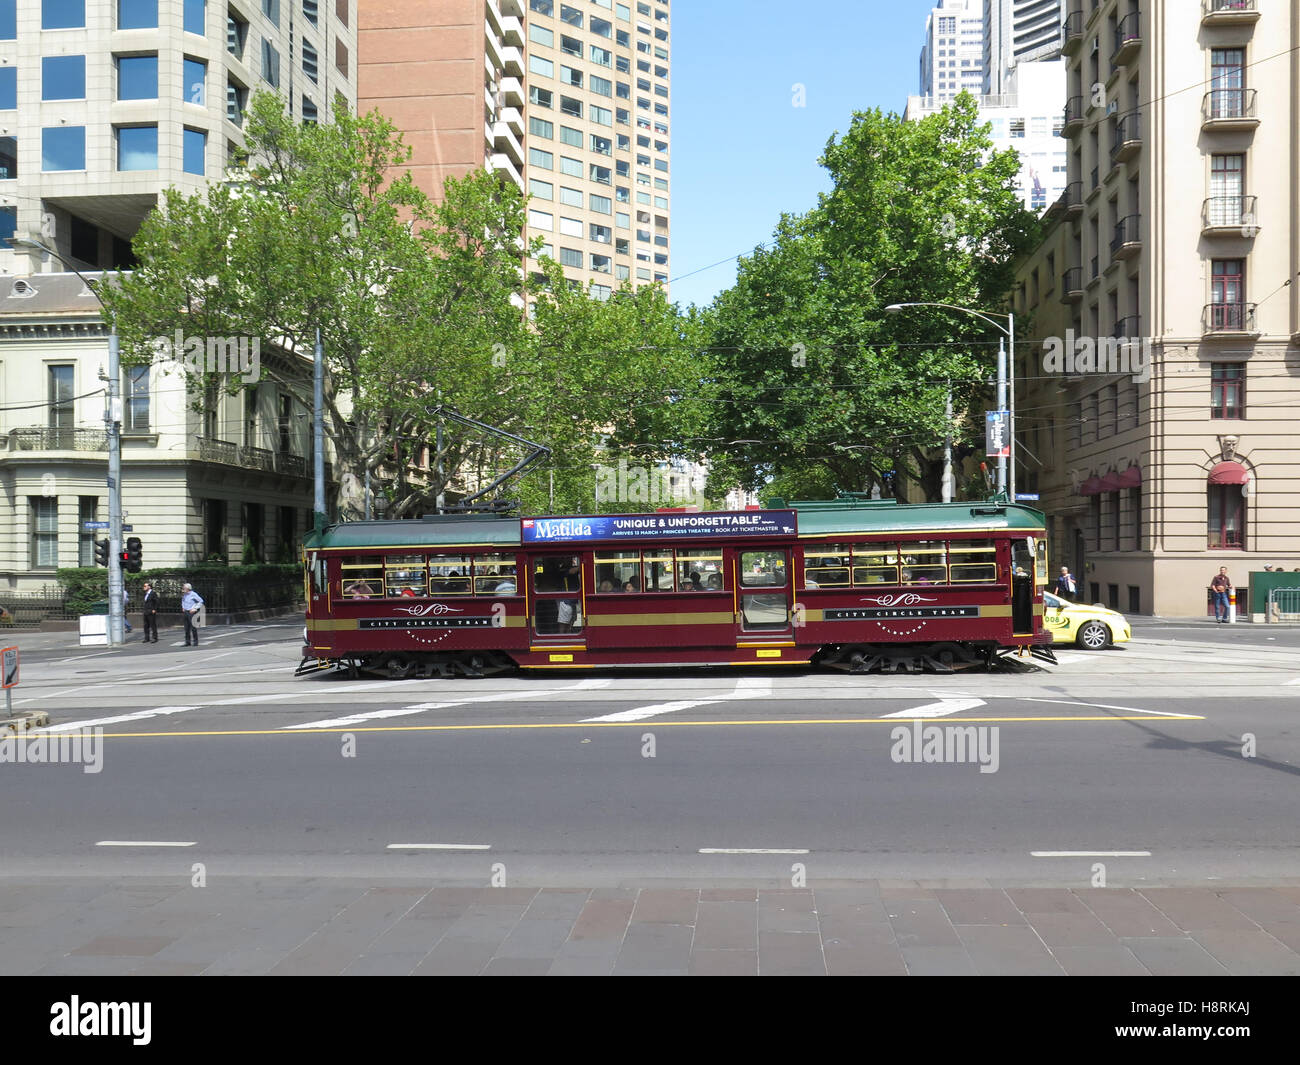 Central Circle tram in Melbourne, passing through the Central Business District Stock Photo